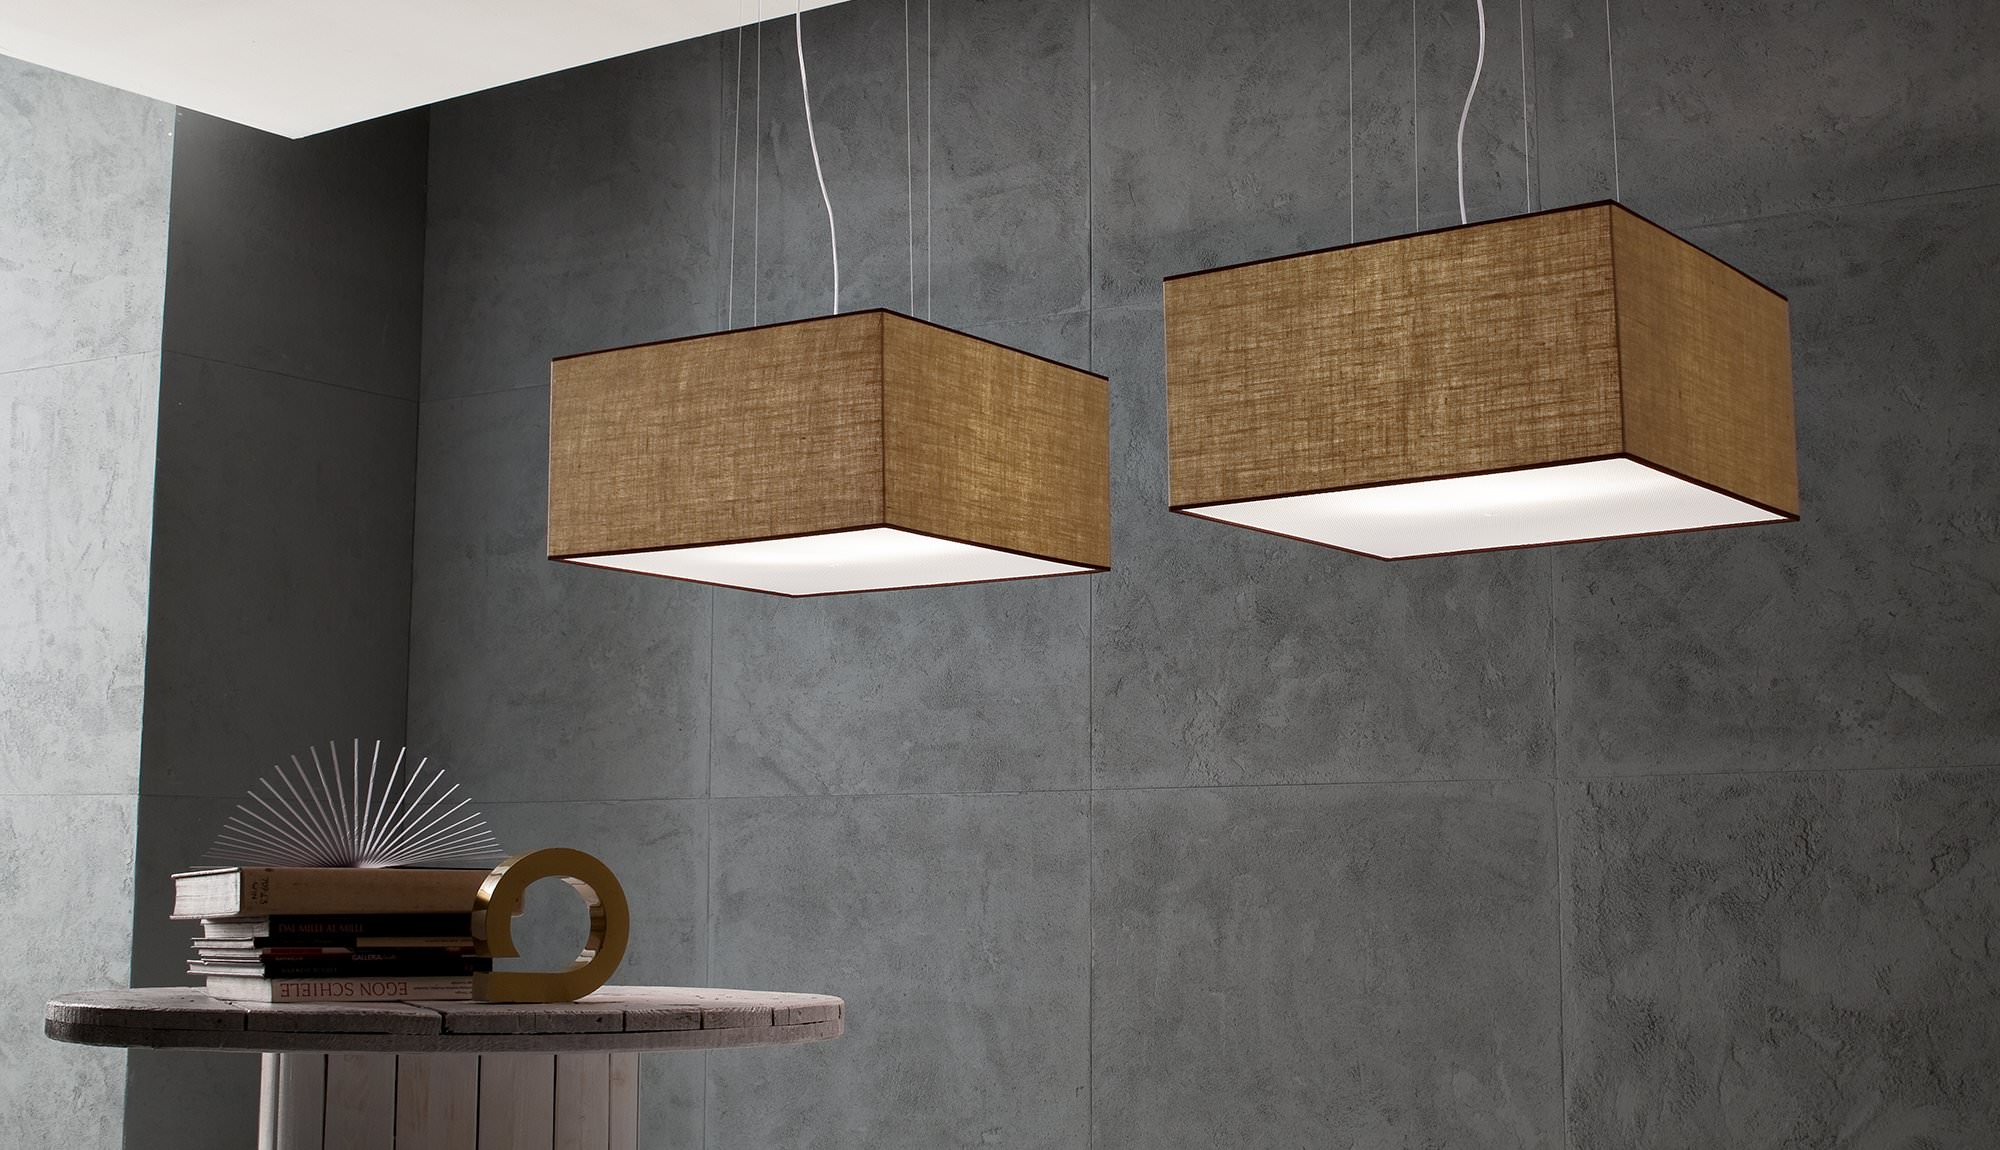 Itama Light 4 Mlampshades 16